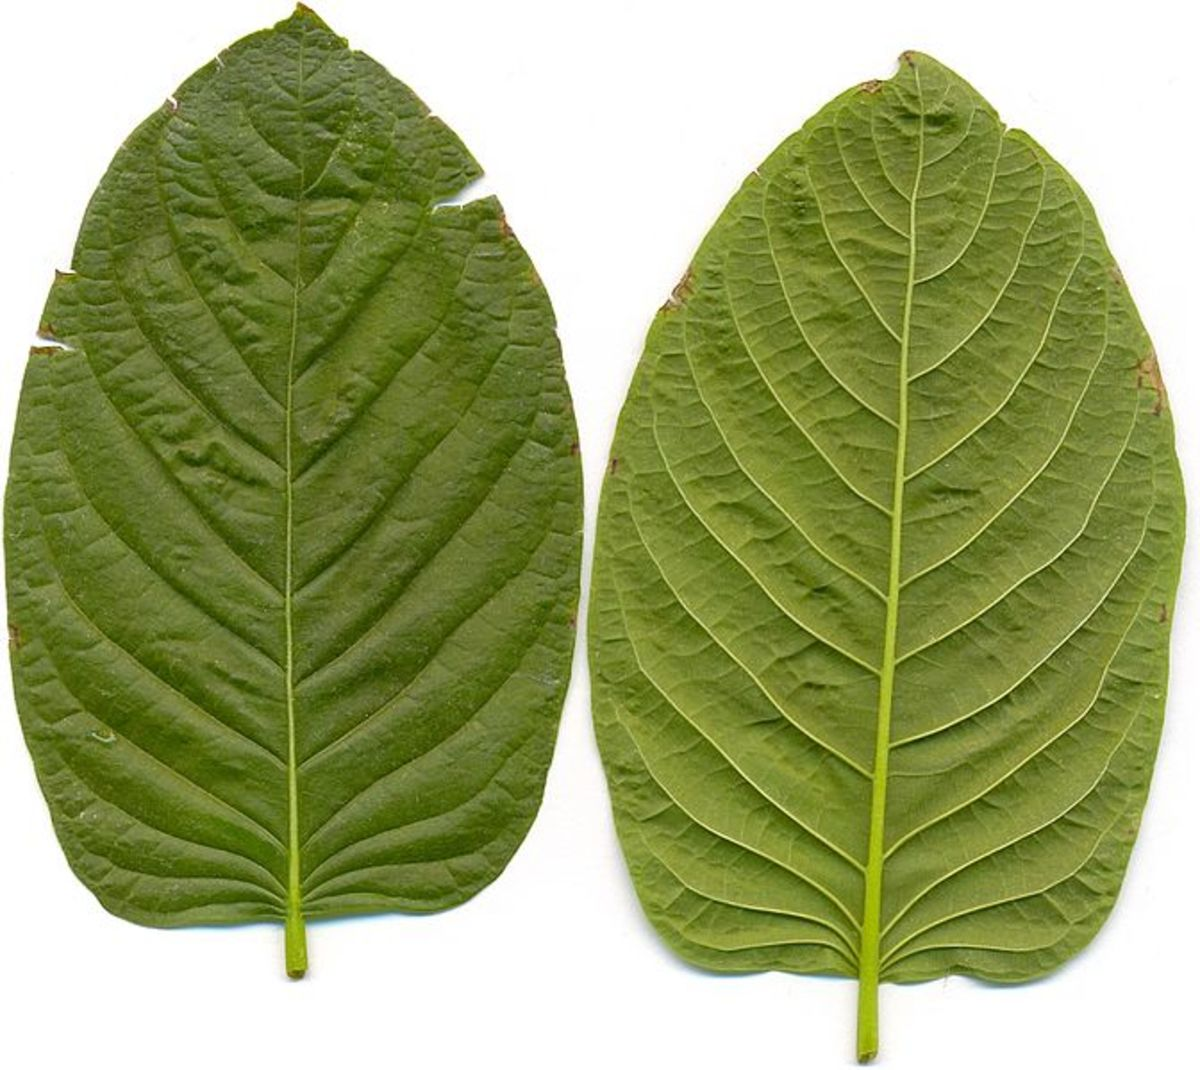 Kratom: A Safe Alternative to Prescription Medication or a Harmful Substance?